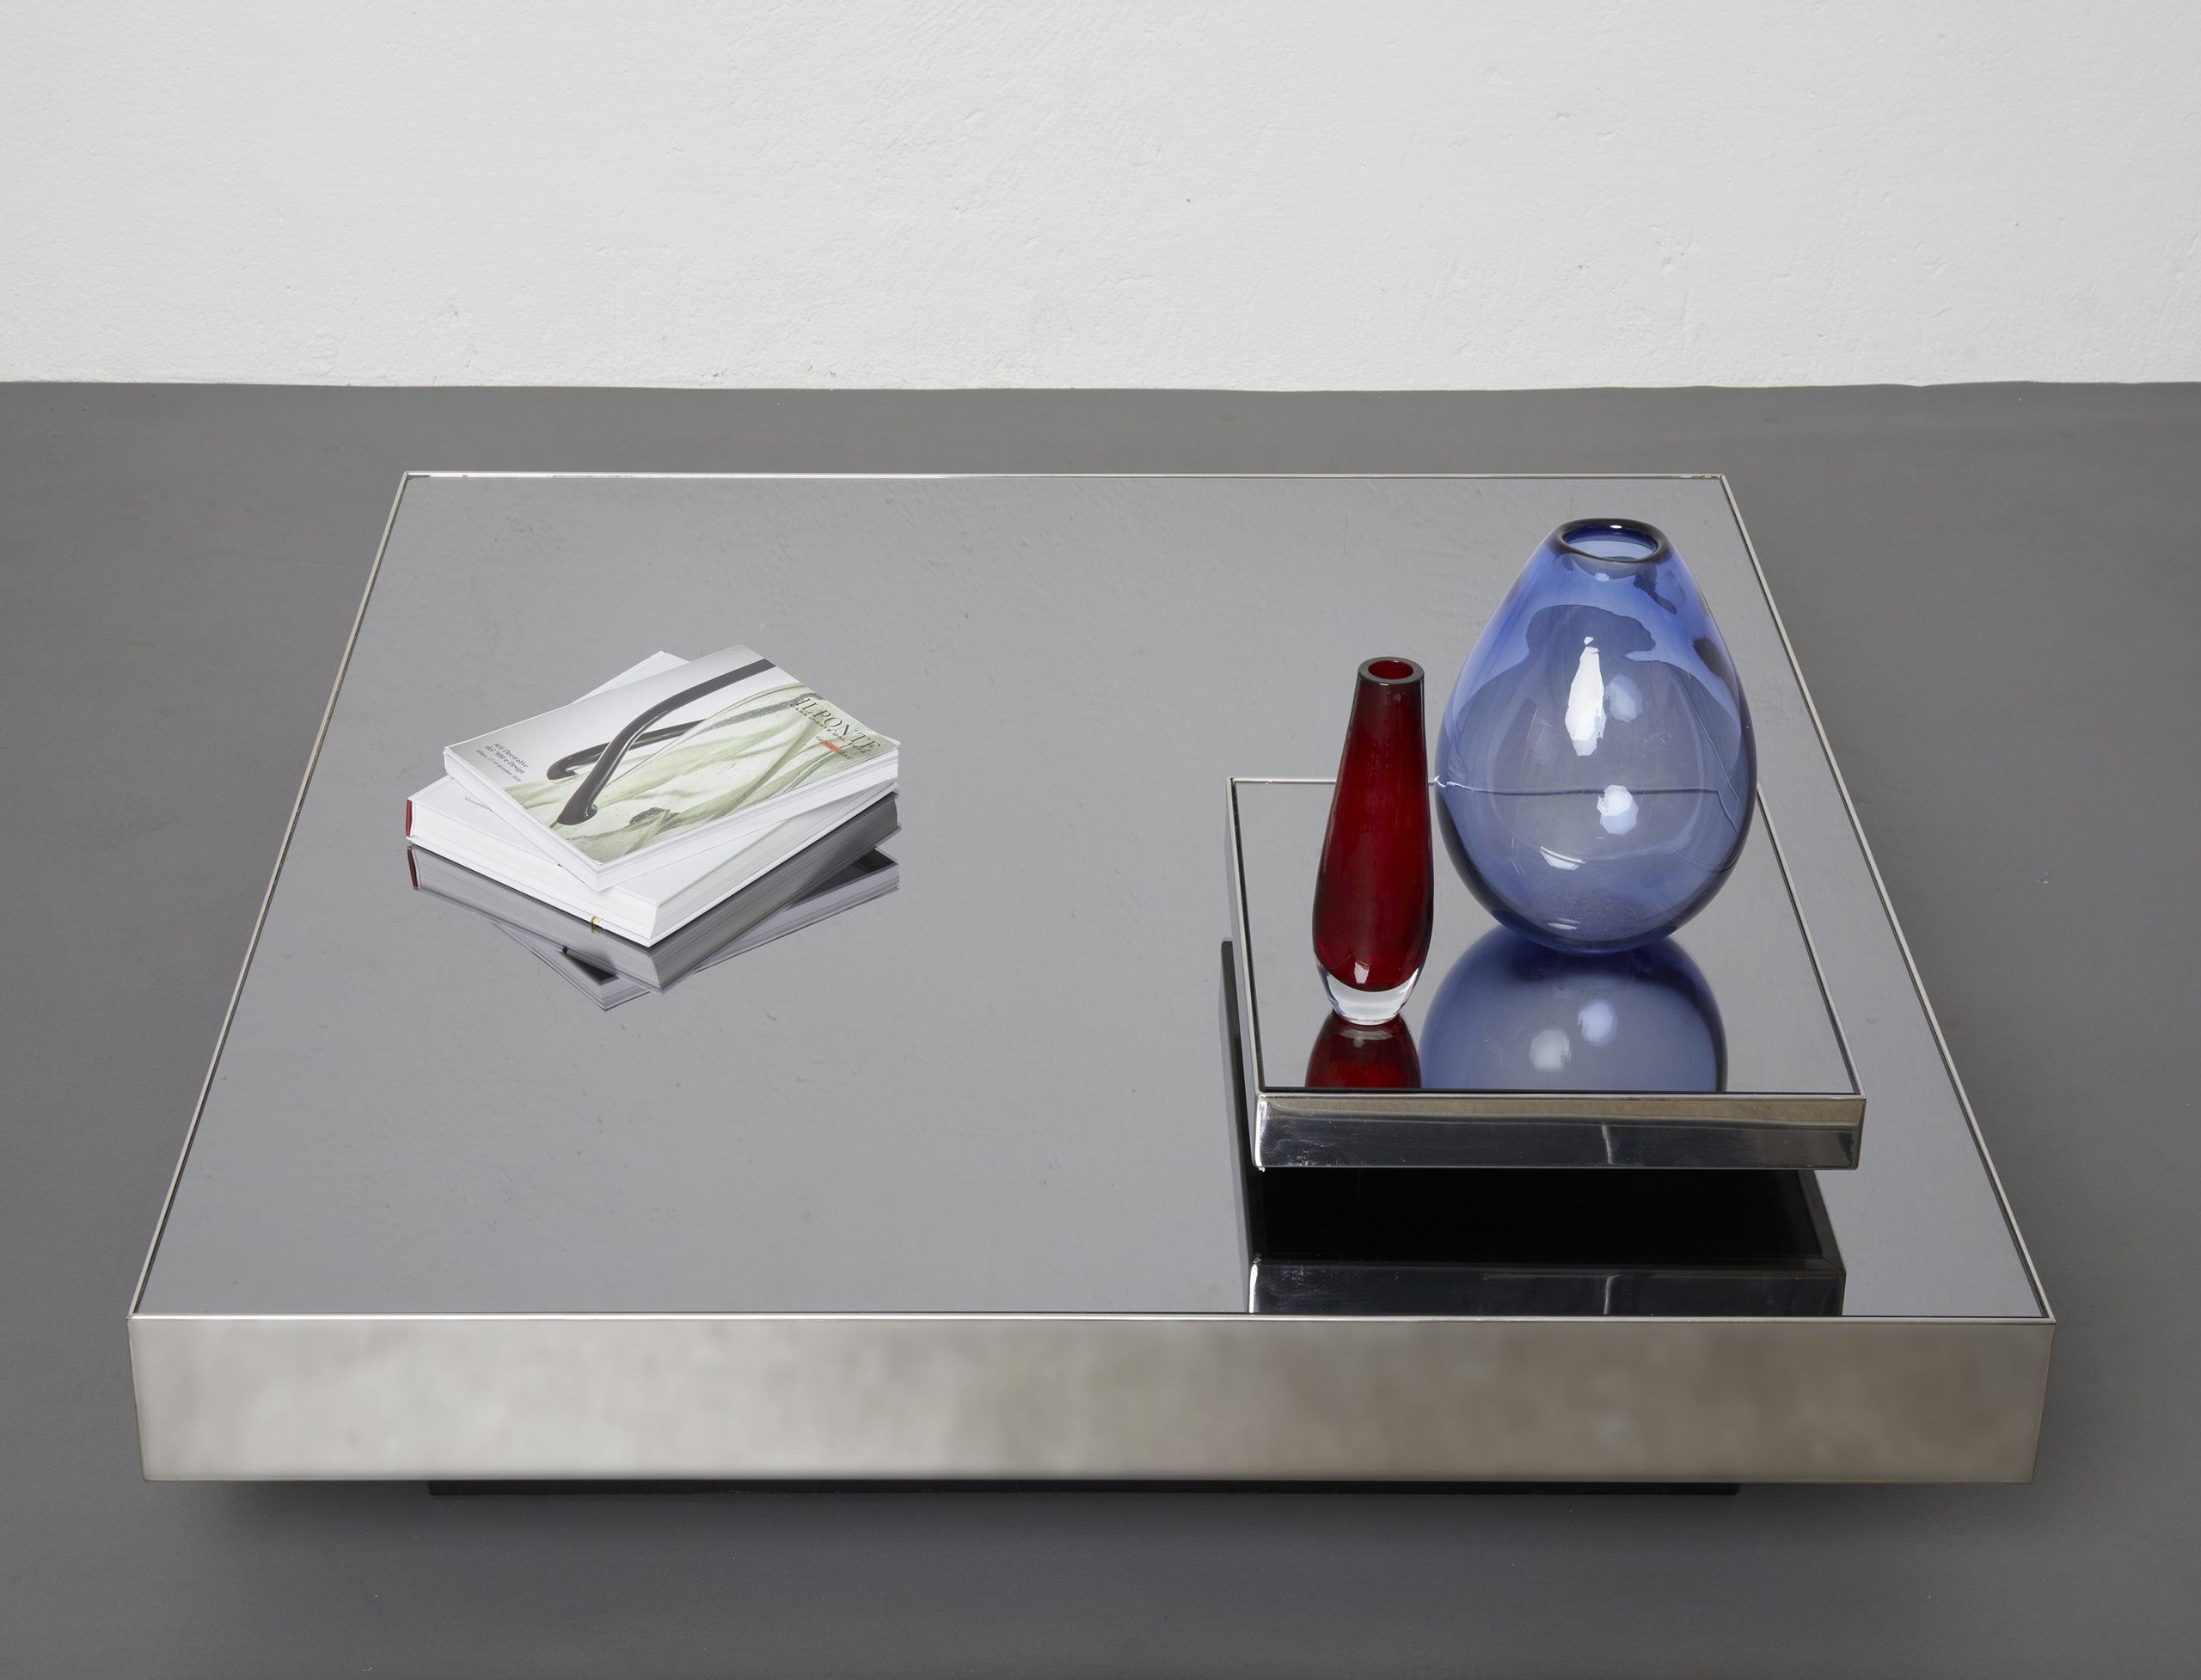 square-coffee-table-by-giovanni-ausenda-ny-form-1970-image-01